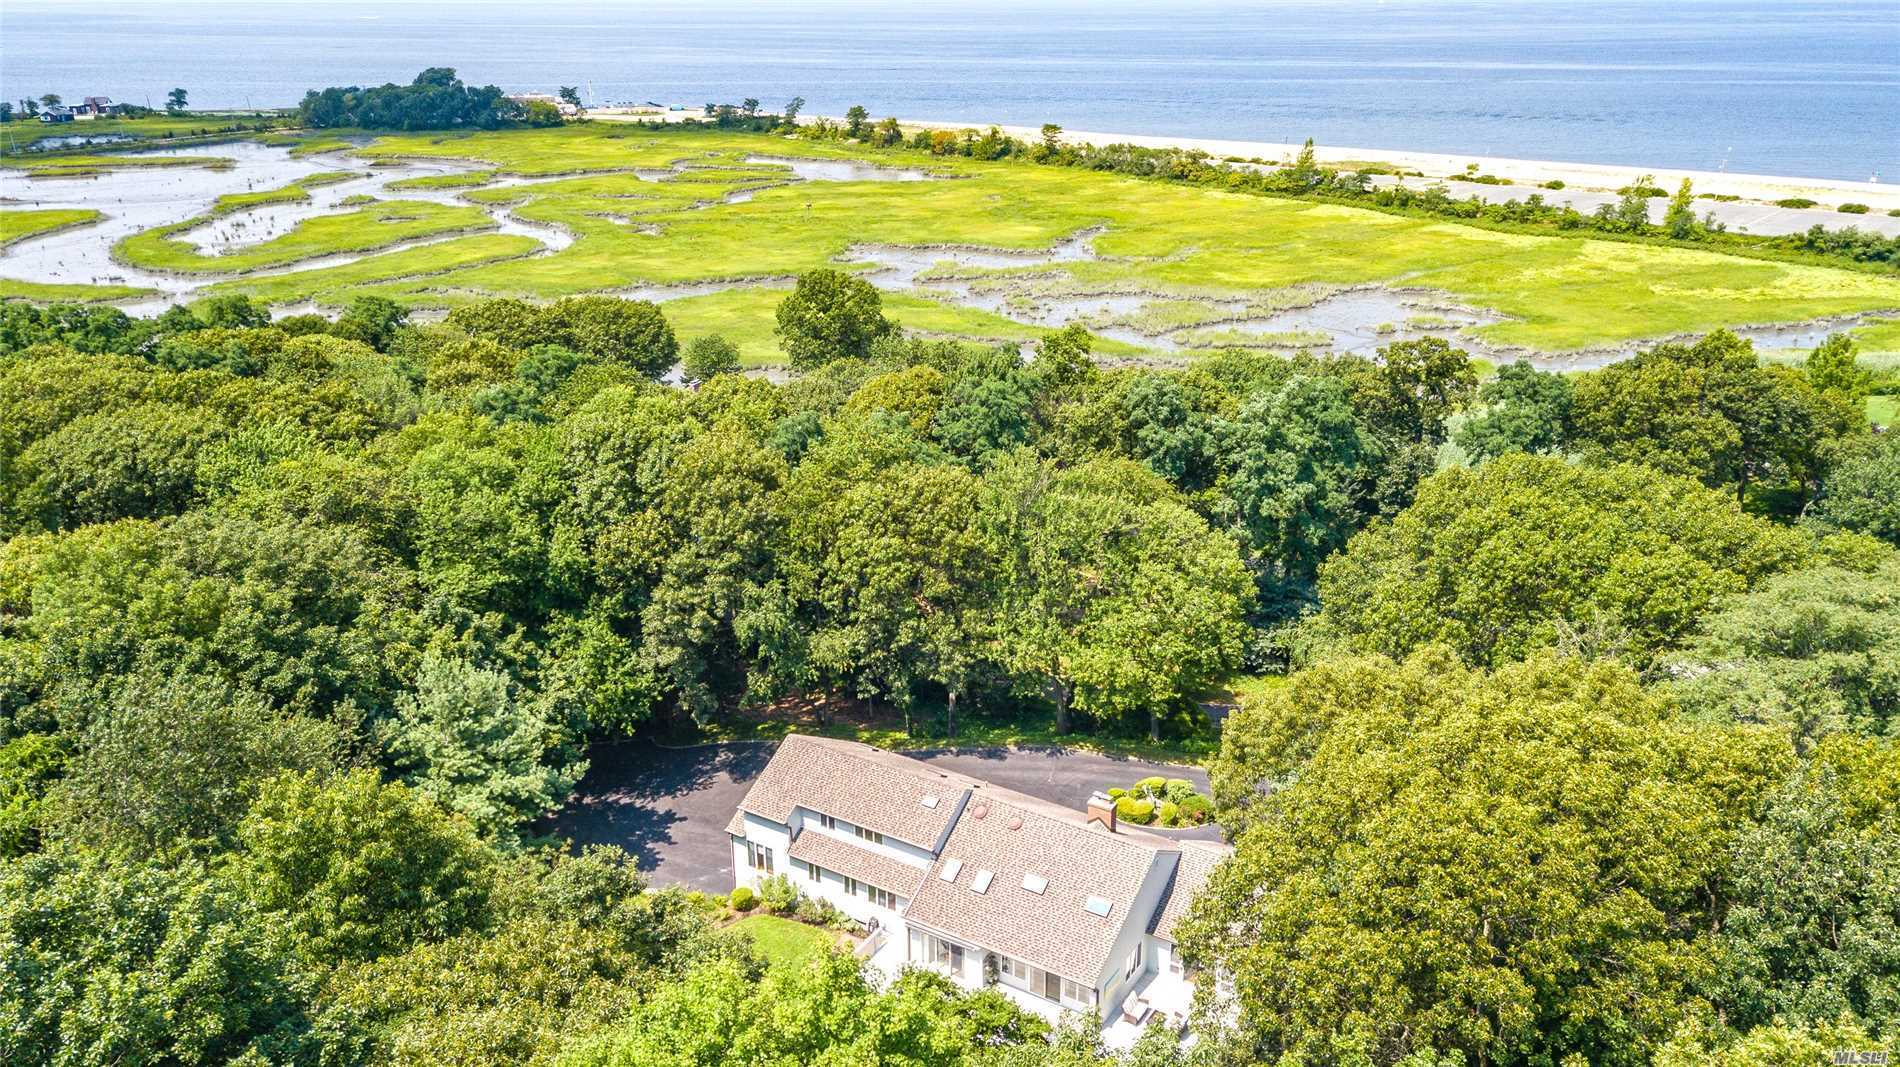 Enjoy Peace & Tranquility Of Lattingtown Living! Just 33Miles From Mid Town Manhattan.Lovely Views Of Long Island Sound, National Wildlife Preserve & Connecticut Shoreline. This Custom Built 4 Br 3.5 Bath Contemporary Farm Ranch Is Perched On A Knoll At The End Of A Private Cul De Sac. Set On 2 Acres On The Grounds Of The Former Stehli Estate.A Bright & Airy Floor Plan W/Vaulted Ceilings & Gourmet Center Island Kitchen Is Perfect For Entertaining! Generator. Cvac. Low Low Taxes!